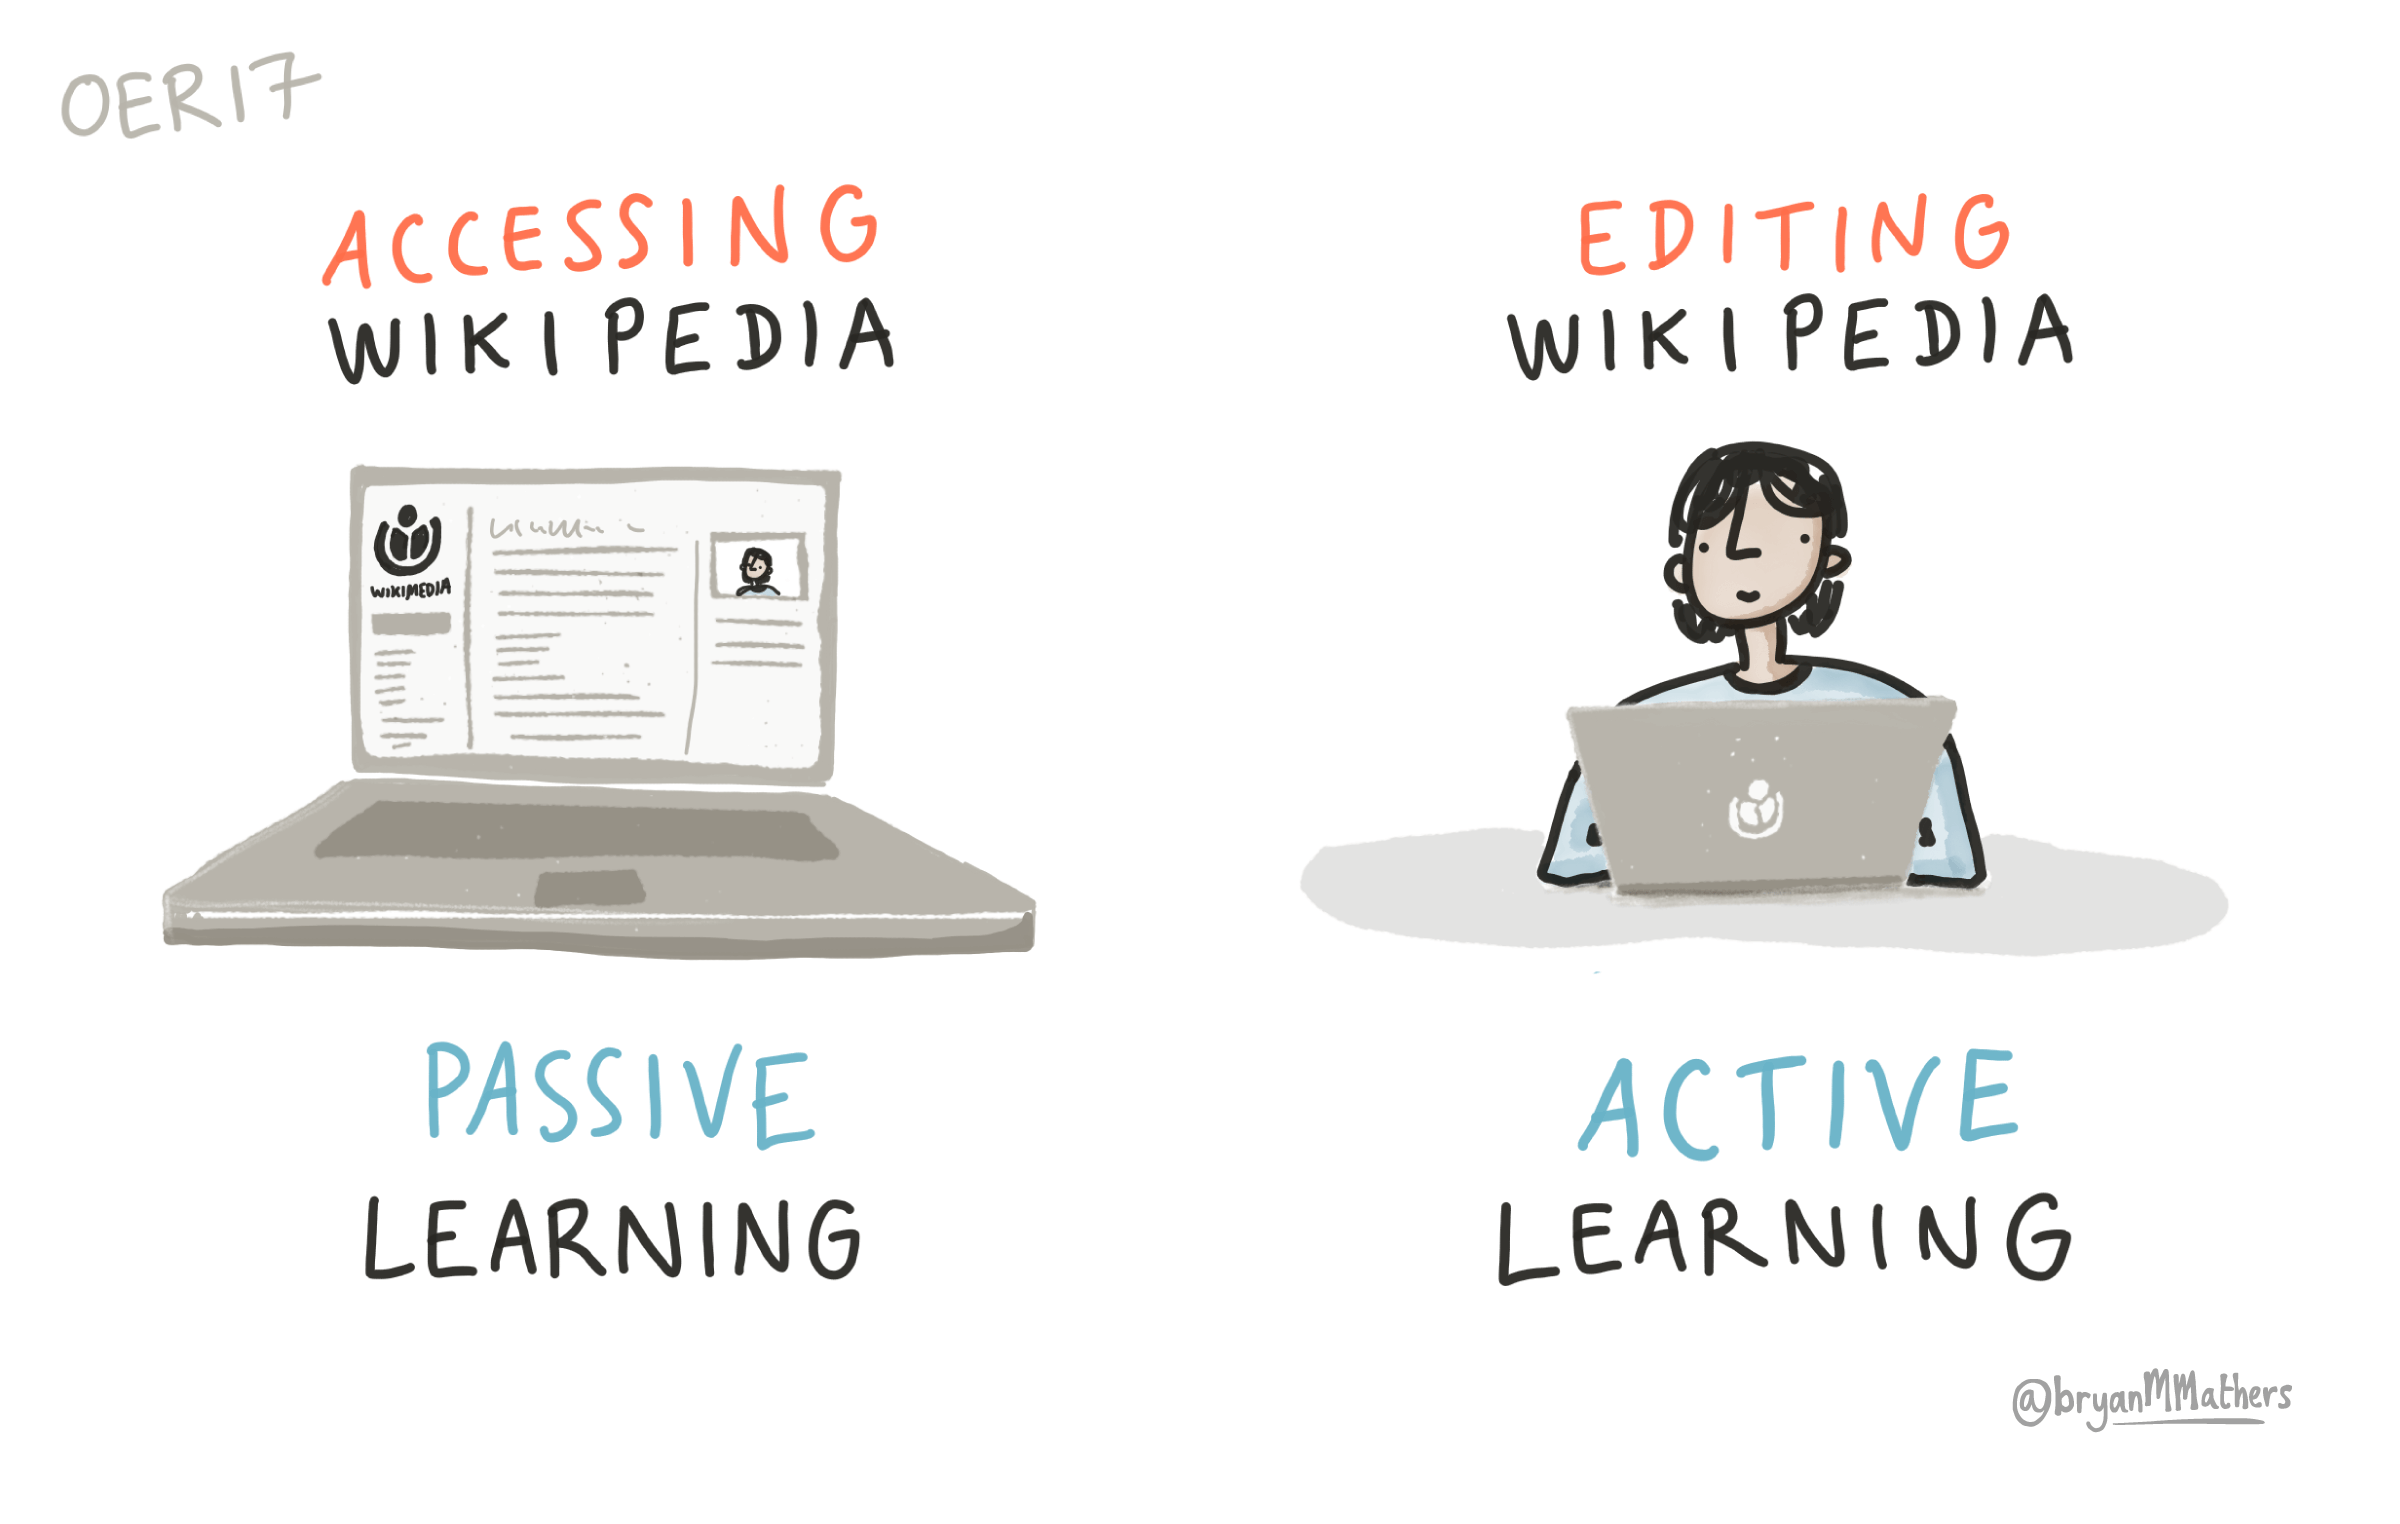 Illustration comparing accessing Wikipedia as passive versus editing Wikipedia as active learning